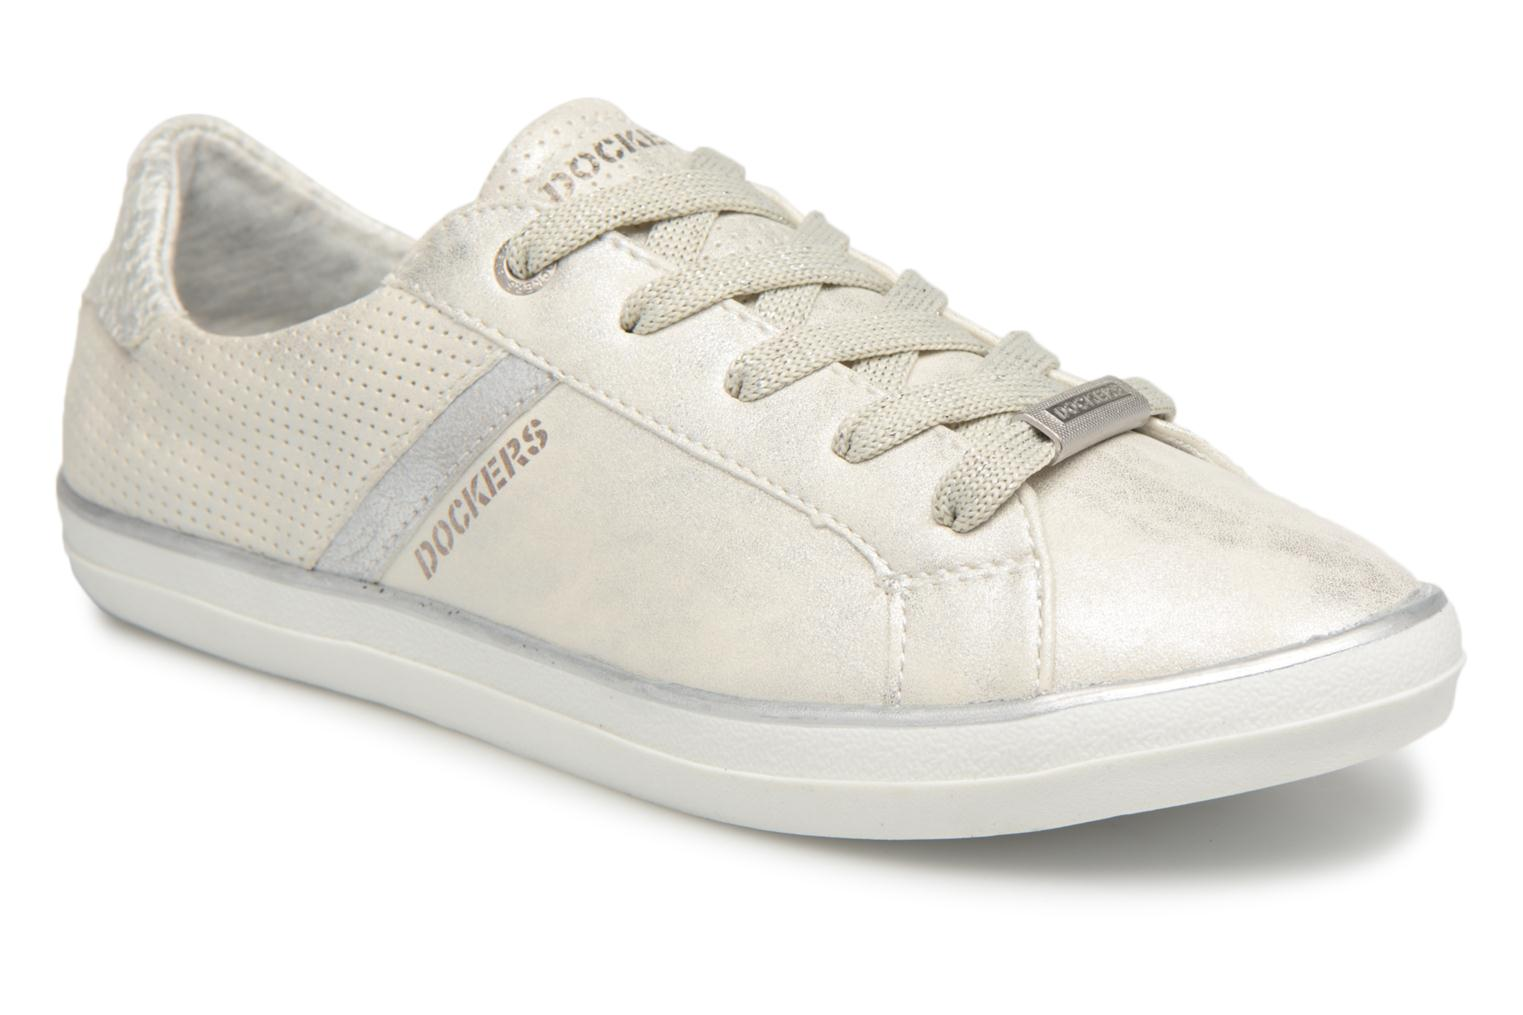 Ana - Chaussures De Sport Pour Femmes / Rose Dockers cnDfWzvA